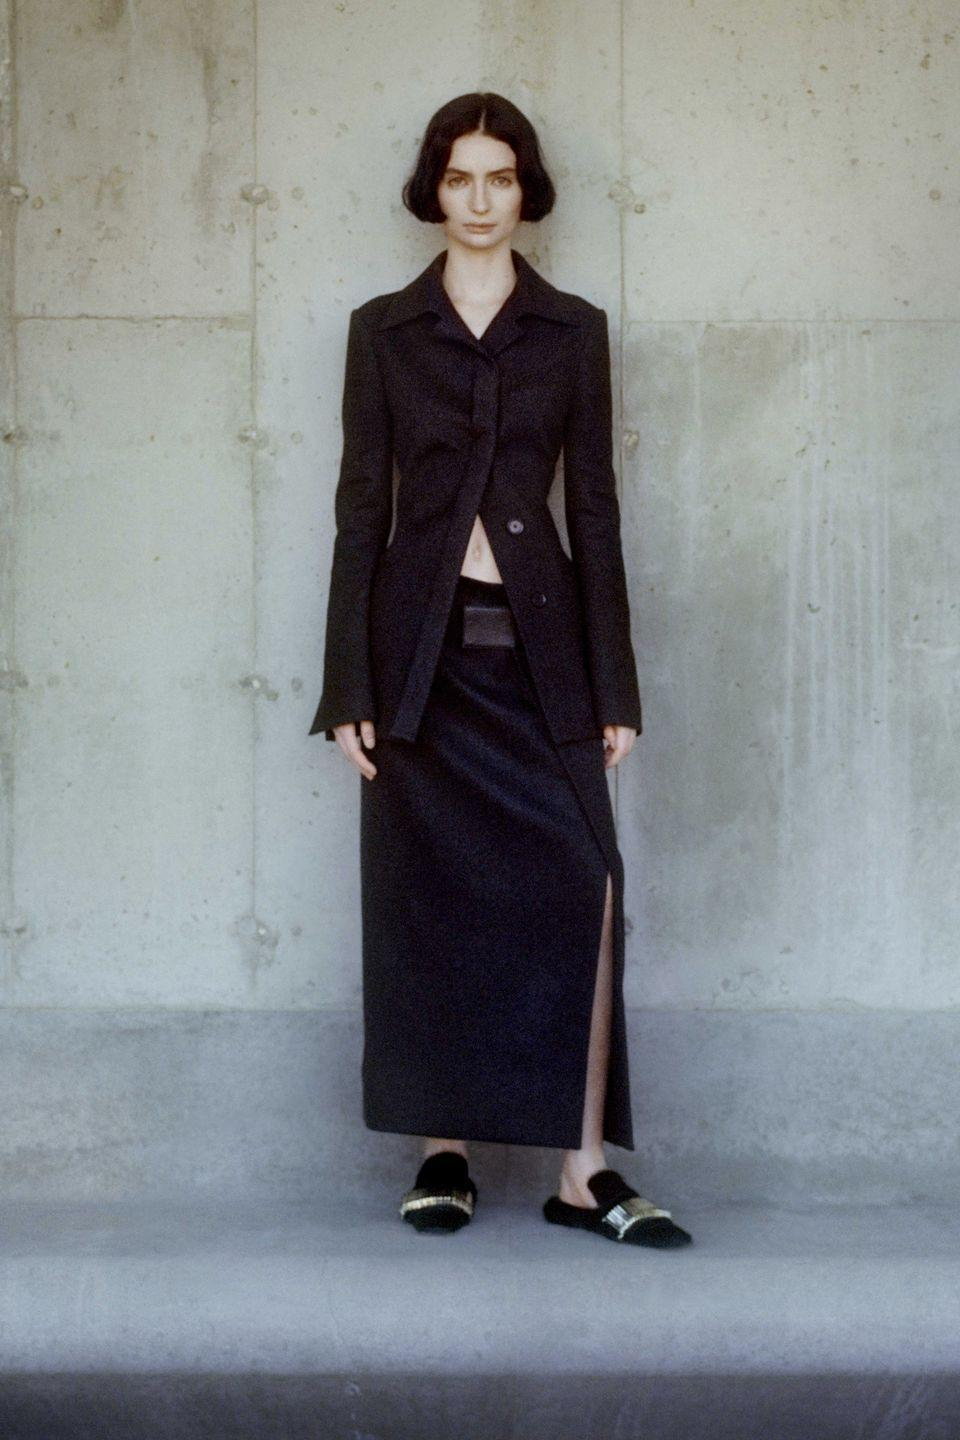 "<p>For AW21, Proenza Schouler aimed to present a ""complete wardrobe created to comfort, inspire, and empower the modern-day woman"".</p><p>Like many designers this season, the team tried to find the perfect balance between reality and optimism, smart and casual. This came about in relaxed tailoring, slinky skirts paired with backless loafers and knitwear given a fun twist in the form of bias-cut dresses and backless tops. Presented via a filmed catwalk show and lookbook, Proenza Schouler tapped one of the most exciting new faces to come out of 2021: <a href=""https://www.harpersbazaar.com/uk/fashion/fashion-news/a35550250/ella-emhoff-proenza-schouler/"" rel=""nofollow noopener"" target=""_blank"" data-ylk=""slk:Vice President Kamala Harris' stepdaughter, Ella Emhoff"" class=""link rapid-noclick-resp"">Vice President Kamala Harris' stepdaughter, Ella Emhoff</a>, who modelled the new collection.</p>"